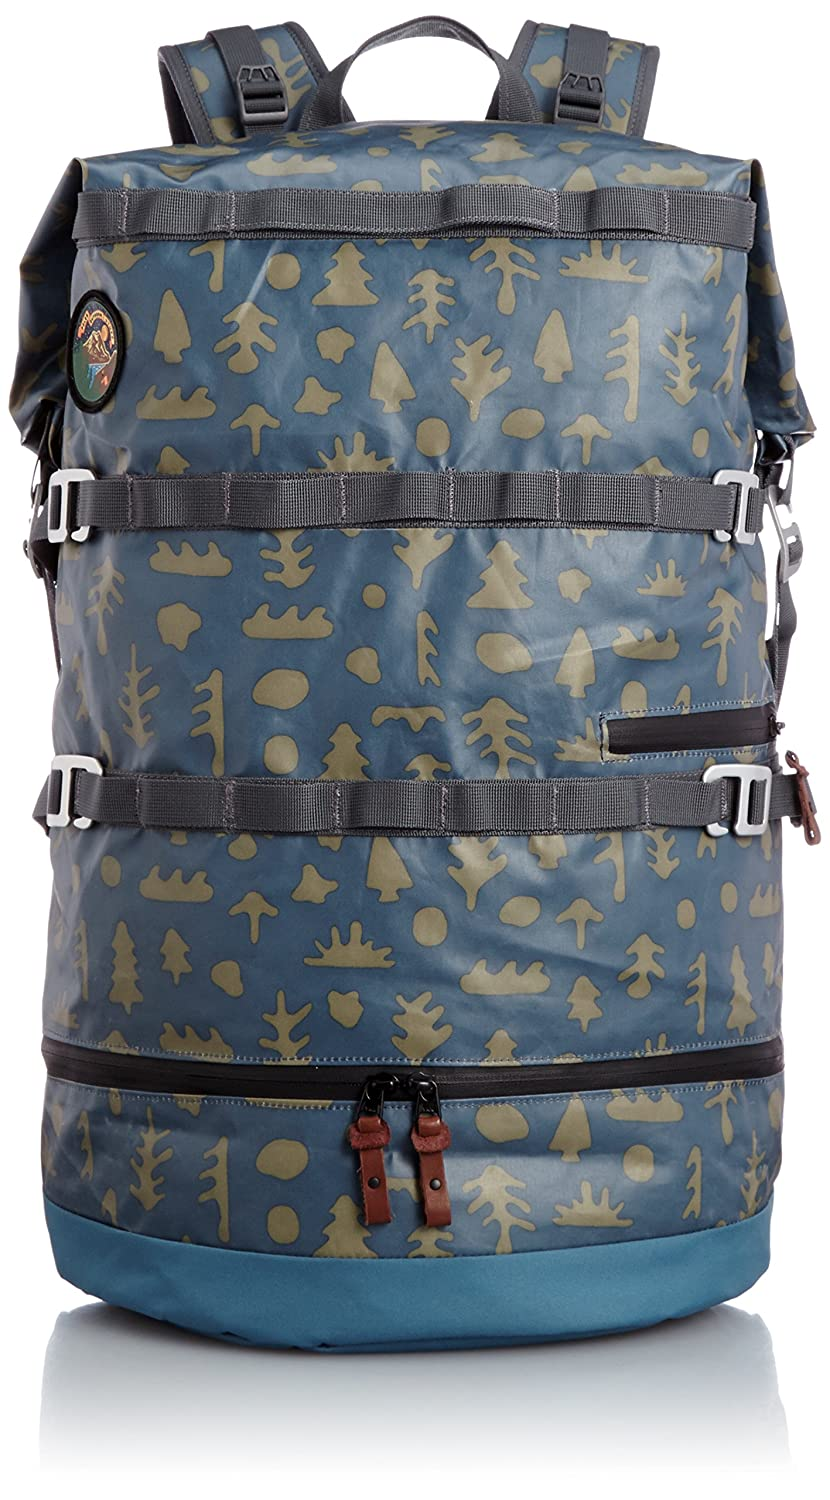 Poler Stuff Bag Wet Dry Pack, Ocean Mushy Trees, 50 x 40 x 6 cm, 18 Liter, POLBAG_WET40